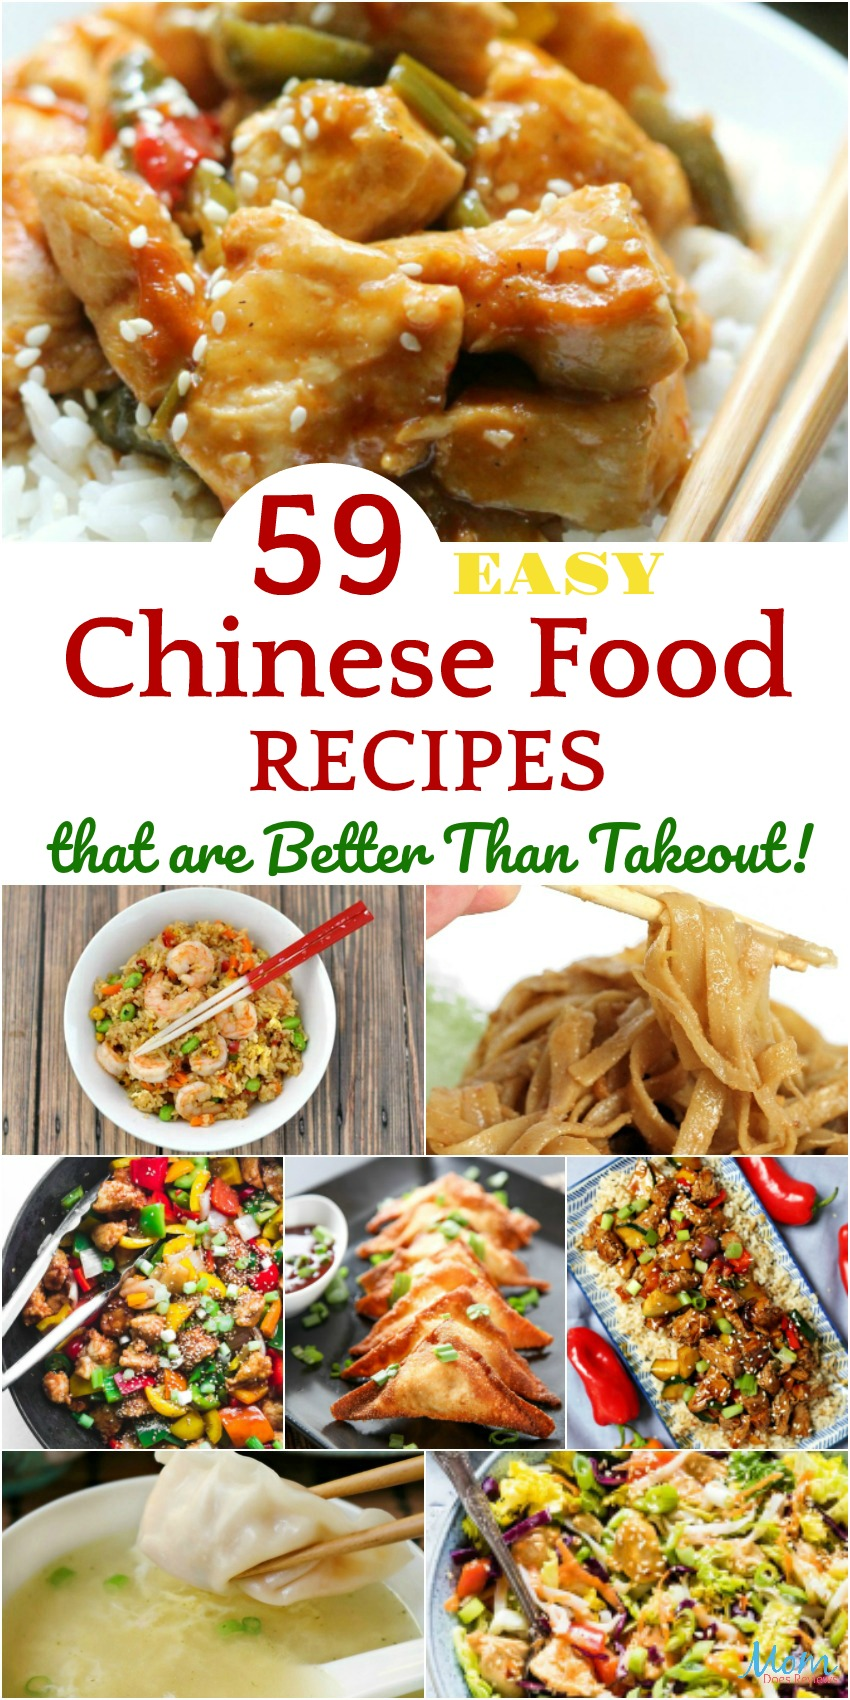 59 Easy Chinese Food Recipes that are Better Than Takeout! #recipes #chinesefood #food #foodie #getinmybelly